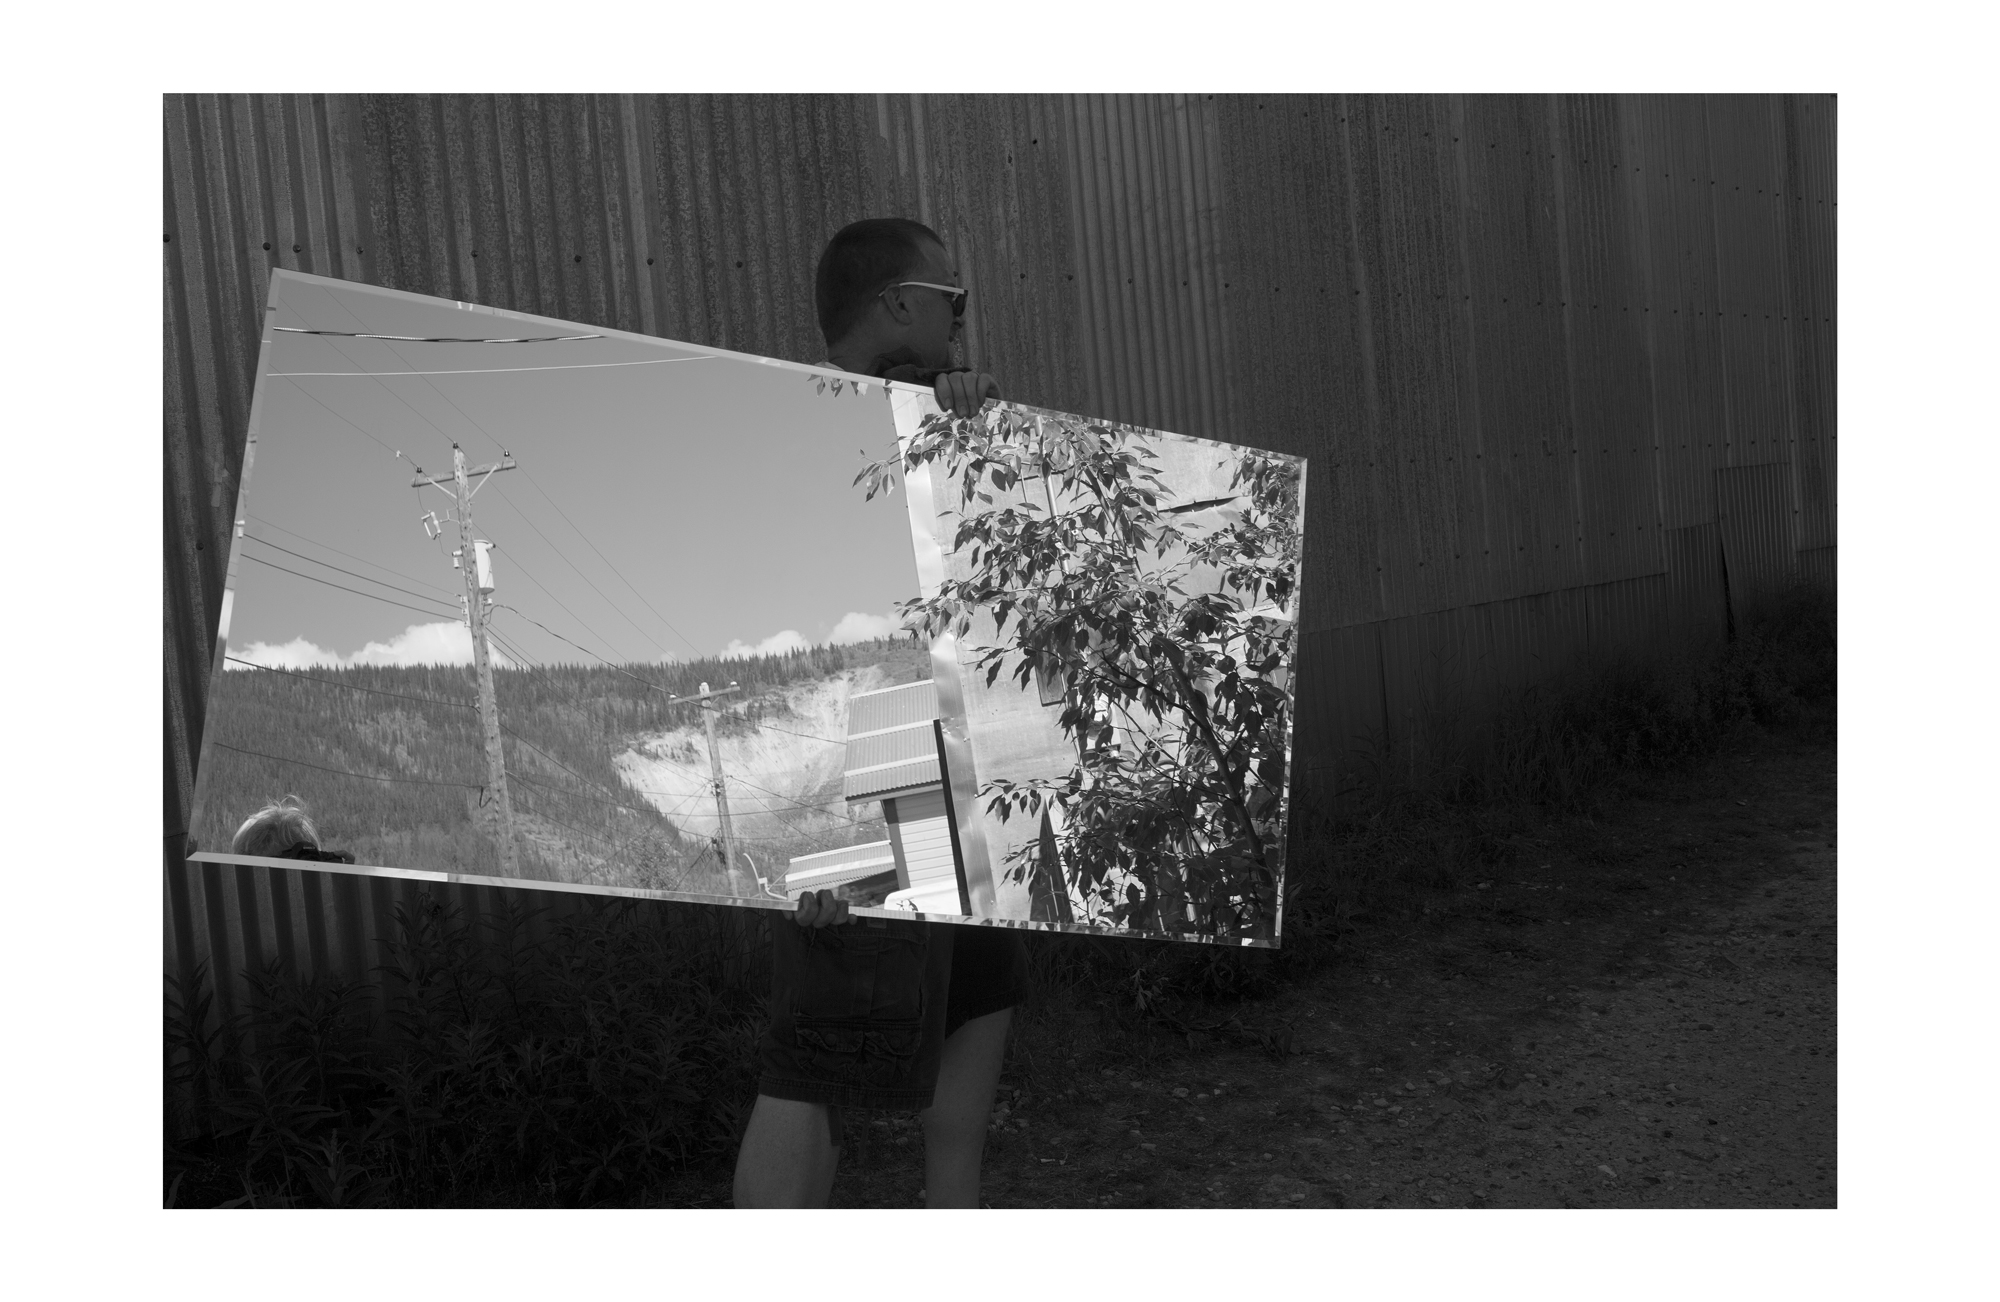 Dawson Looking Glass 10, 2015, documentation of performance (photographic print, 40 x 26 inches, edition of 5, 1 artist proof)